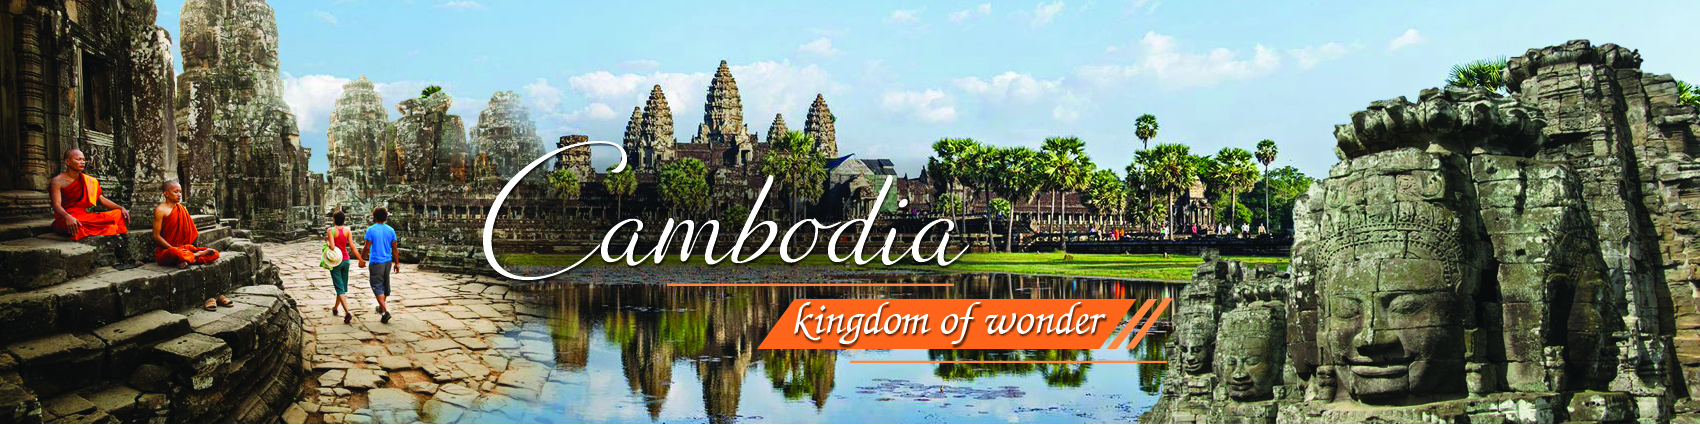 http://indochinatravelland.com/orange-clouds-of-cambodia-8days/7nights-package